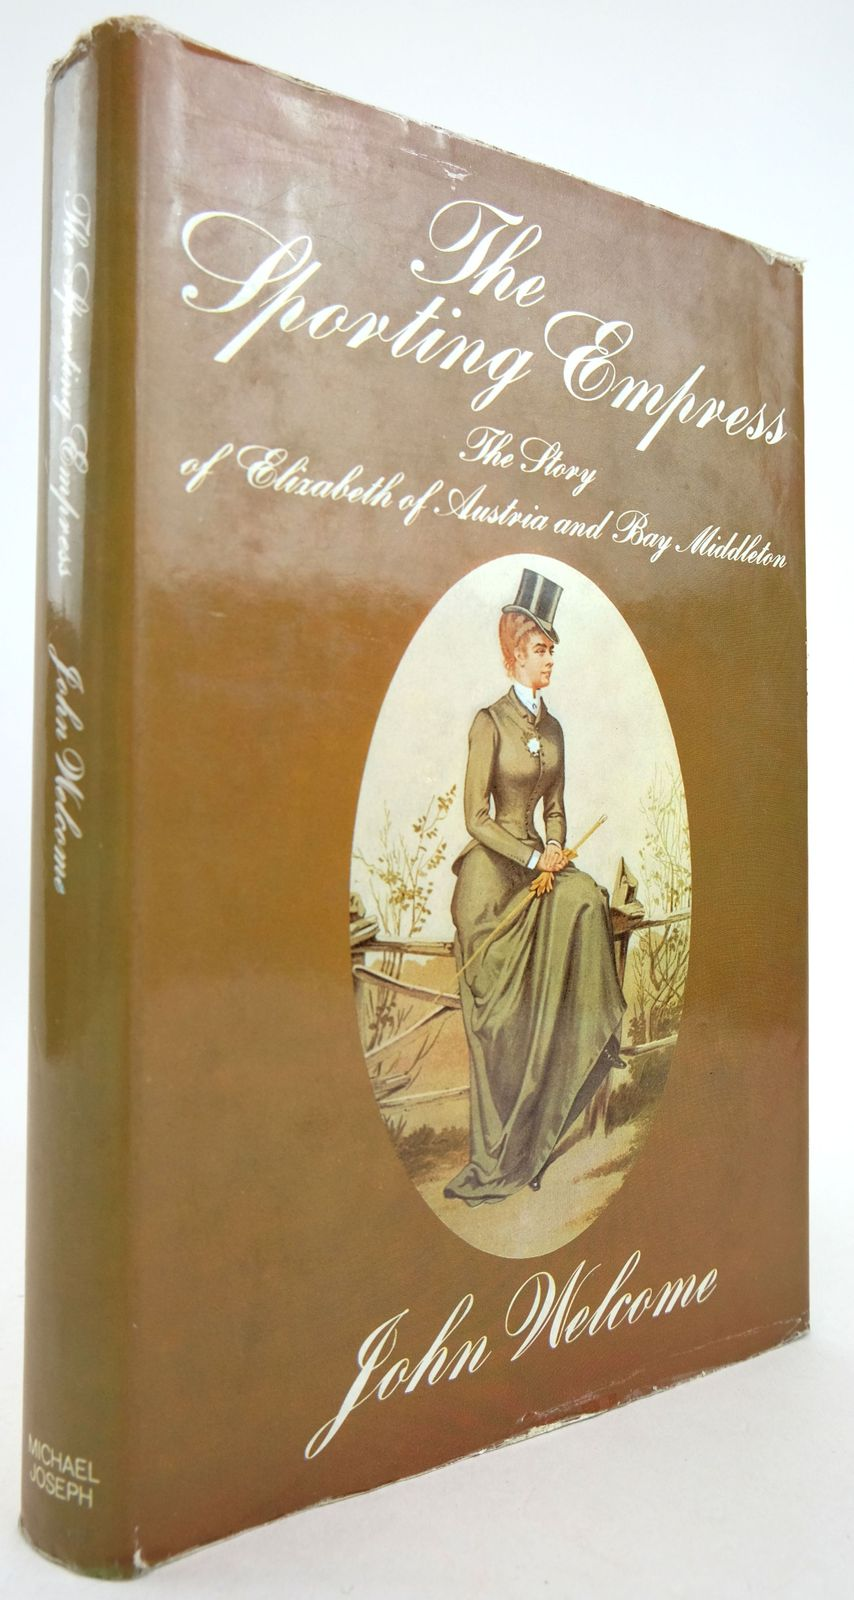 Photo of THE SPORTING EMPRESS: THE STORY OF ELIZABETH OF AUSTRIA AND BAY MIDDLETON- Stock Number: 1819224